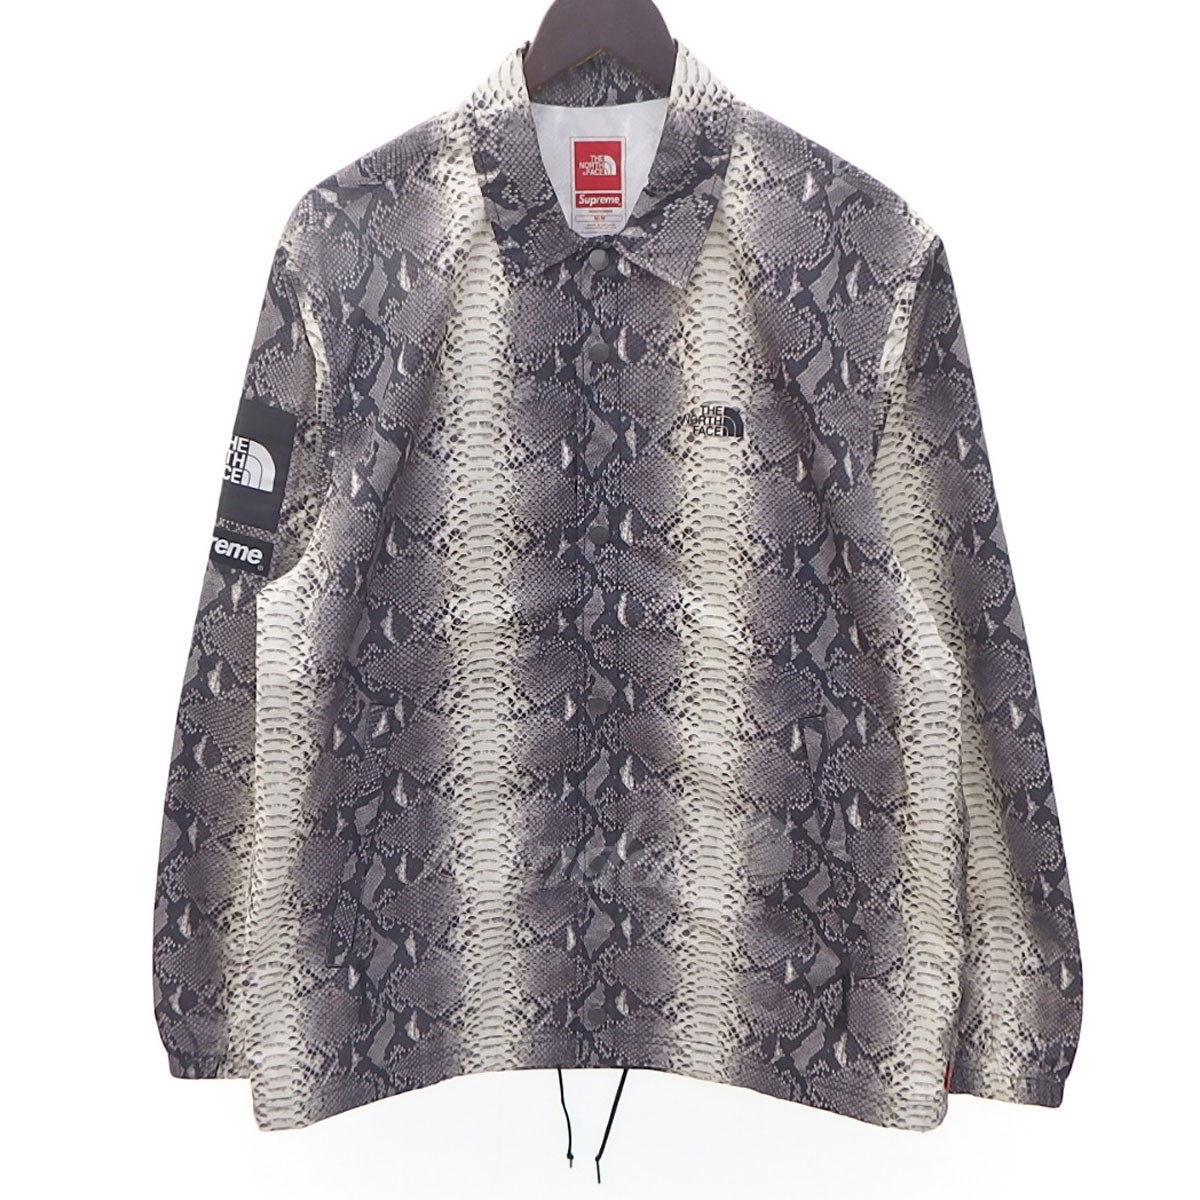 【中古】Supreme×THE NORTH FACE 18SS Snakes taped seam 総柄コーチジャケット 【送料無料】 【095457】 【KIND1550】